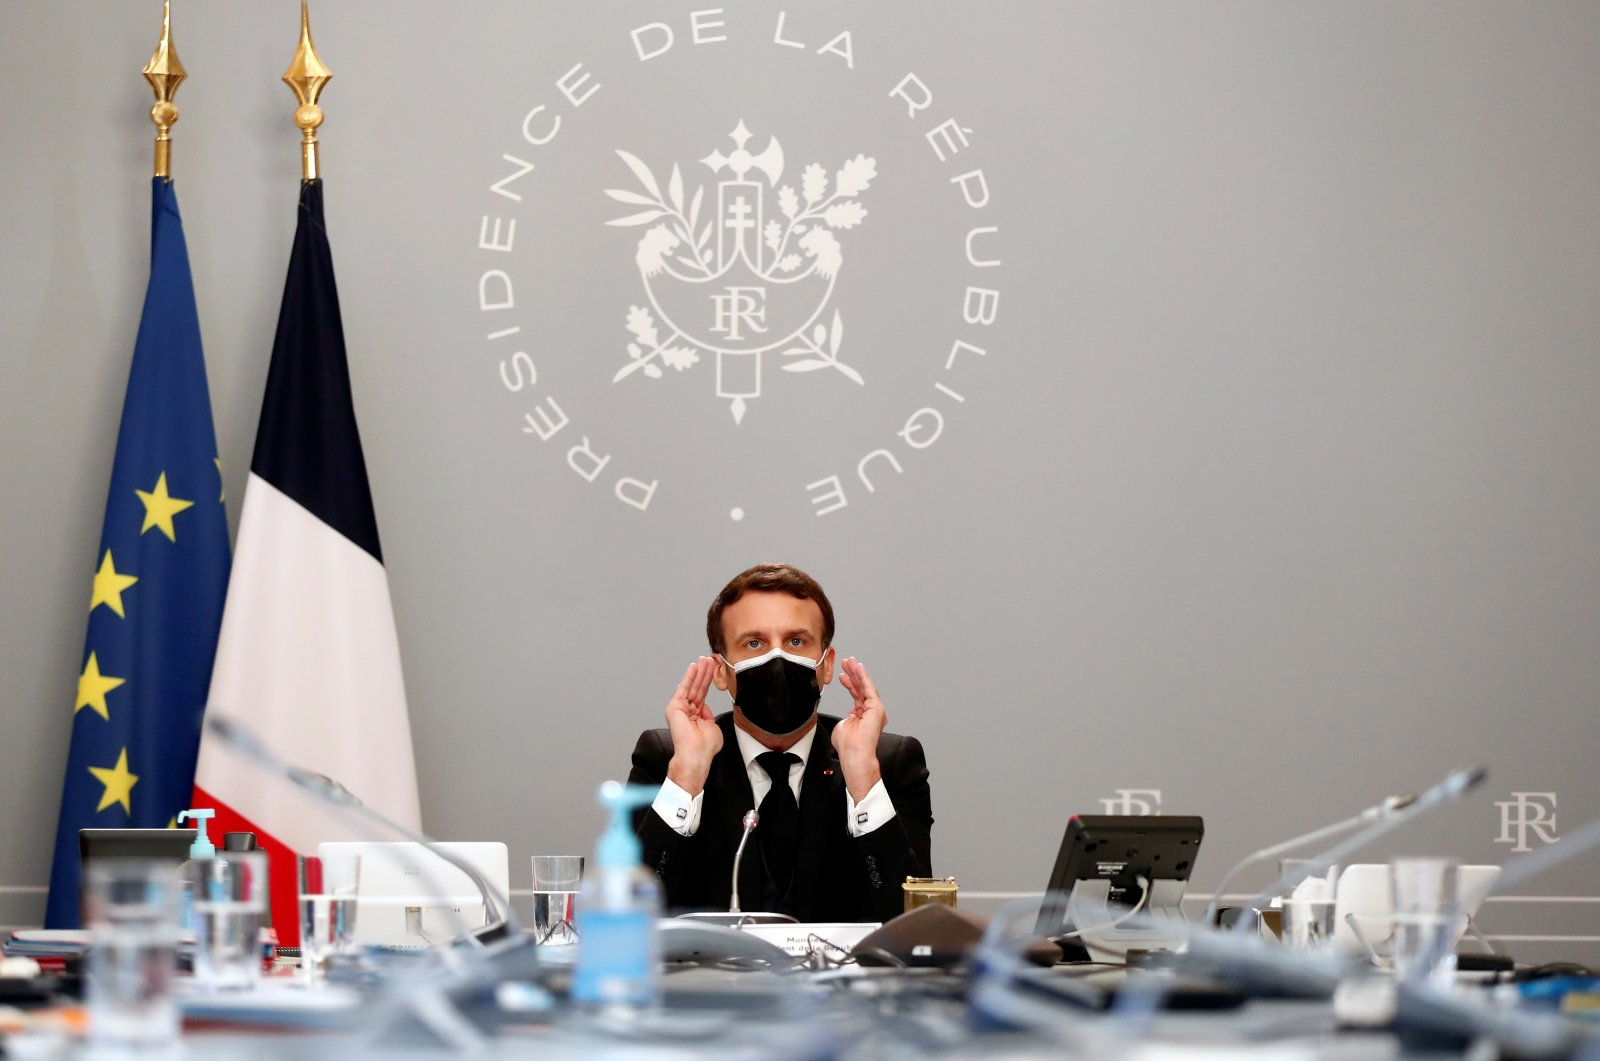 French President Emmanuel Macron delivers initial remarks during a videoconference meeting at Elysee Palace, Paris, France, Feb. 12, 2021. (Reuters Photo)